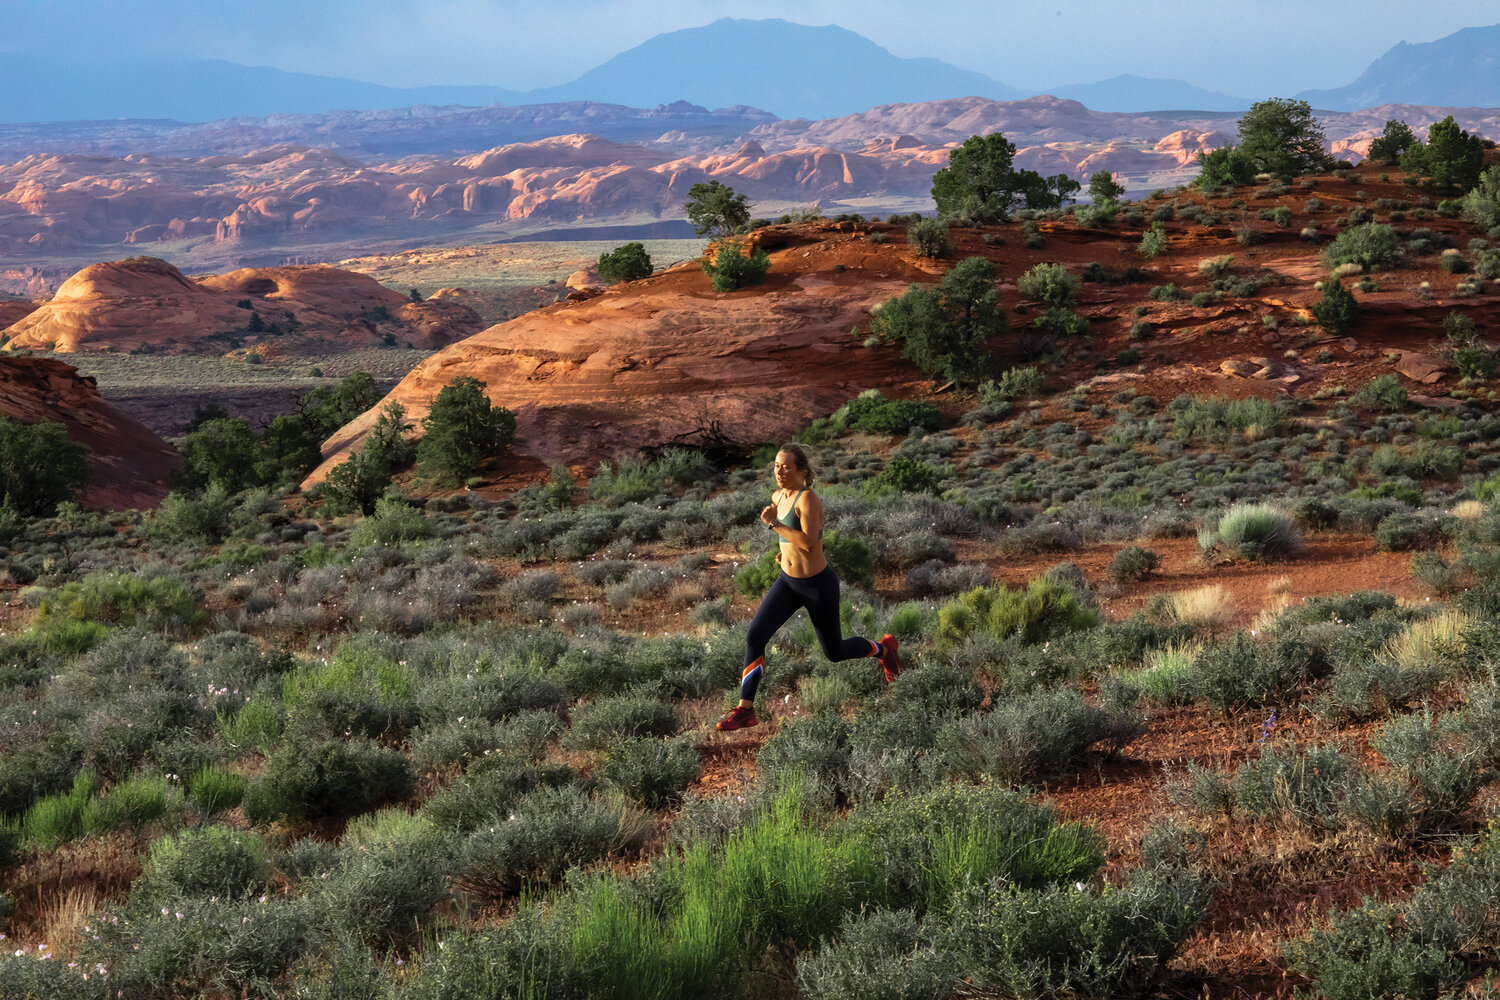 Running along the Paiute Strip. Photo by Stephen Eginoire